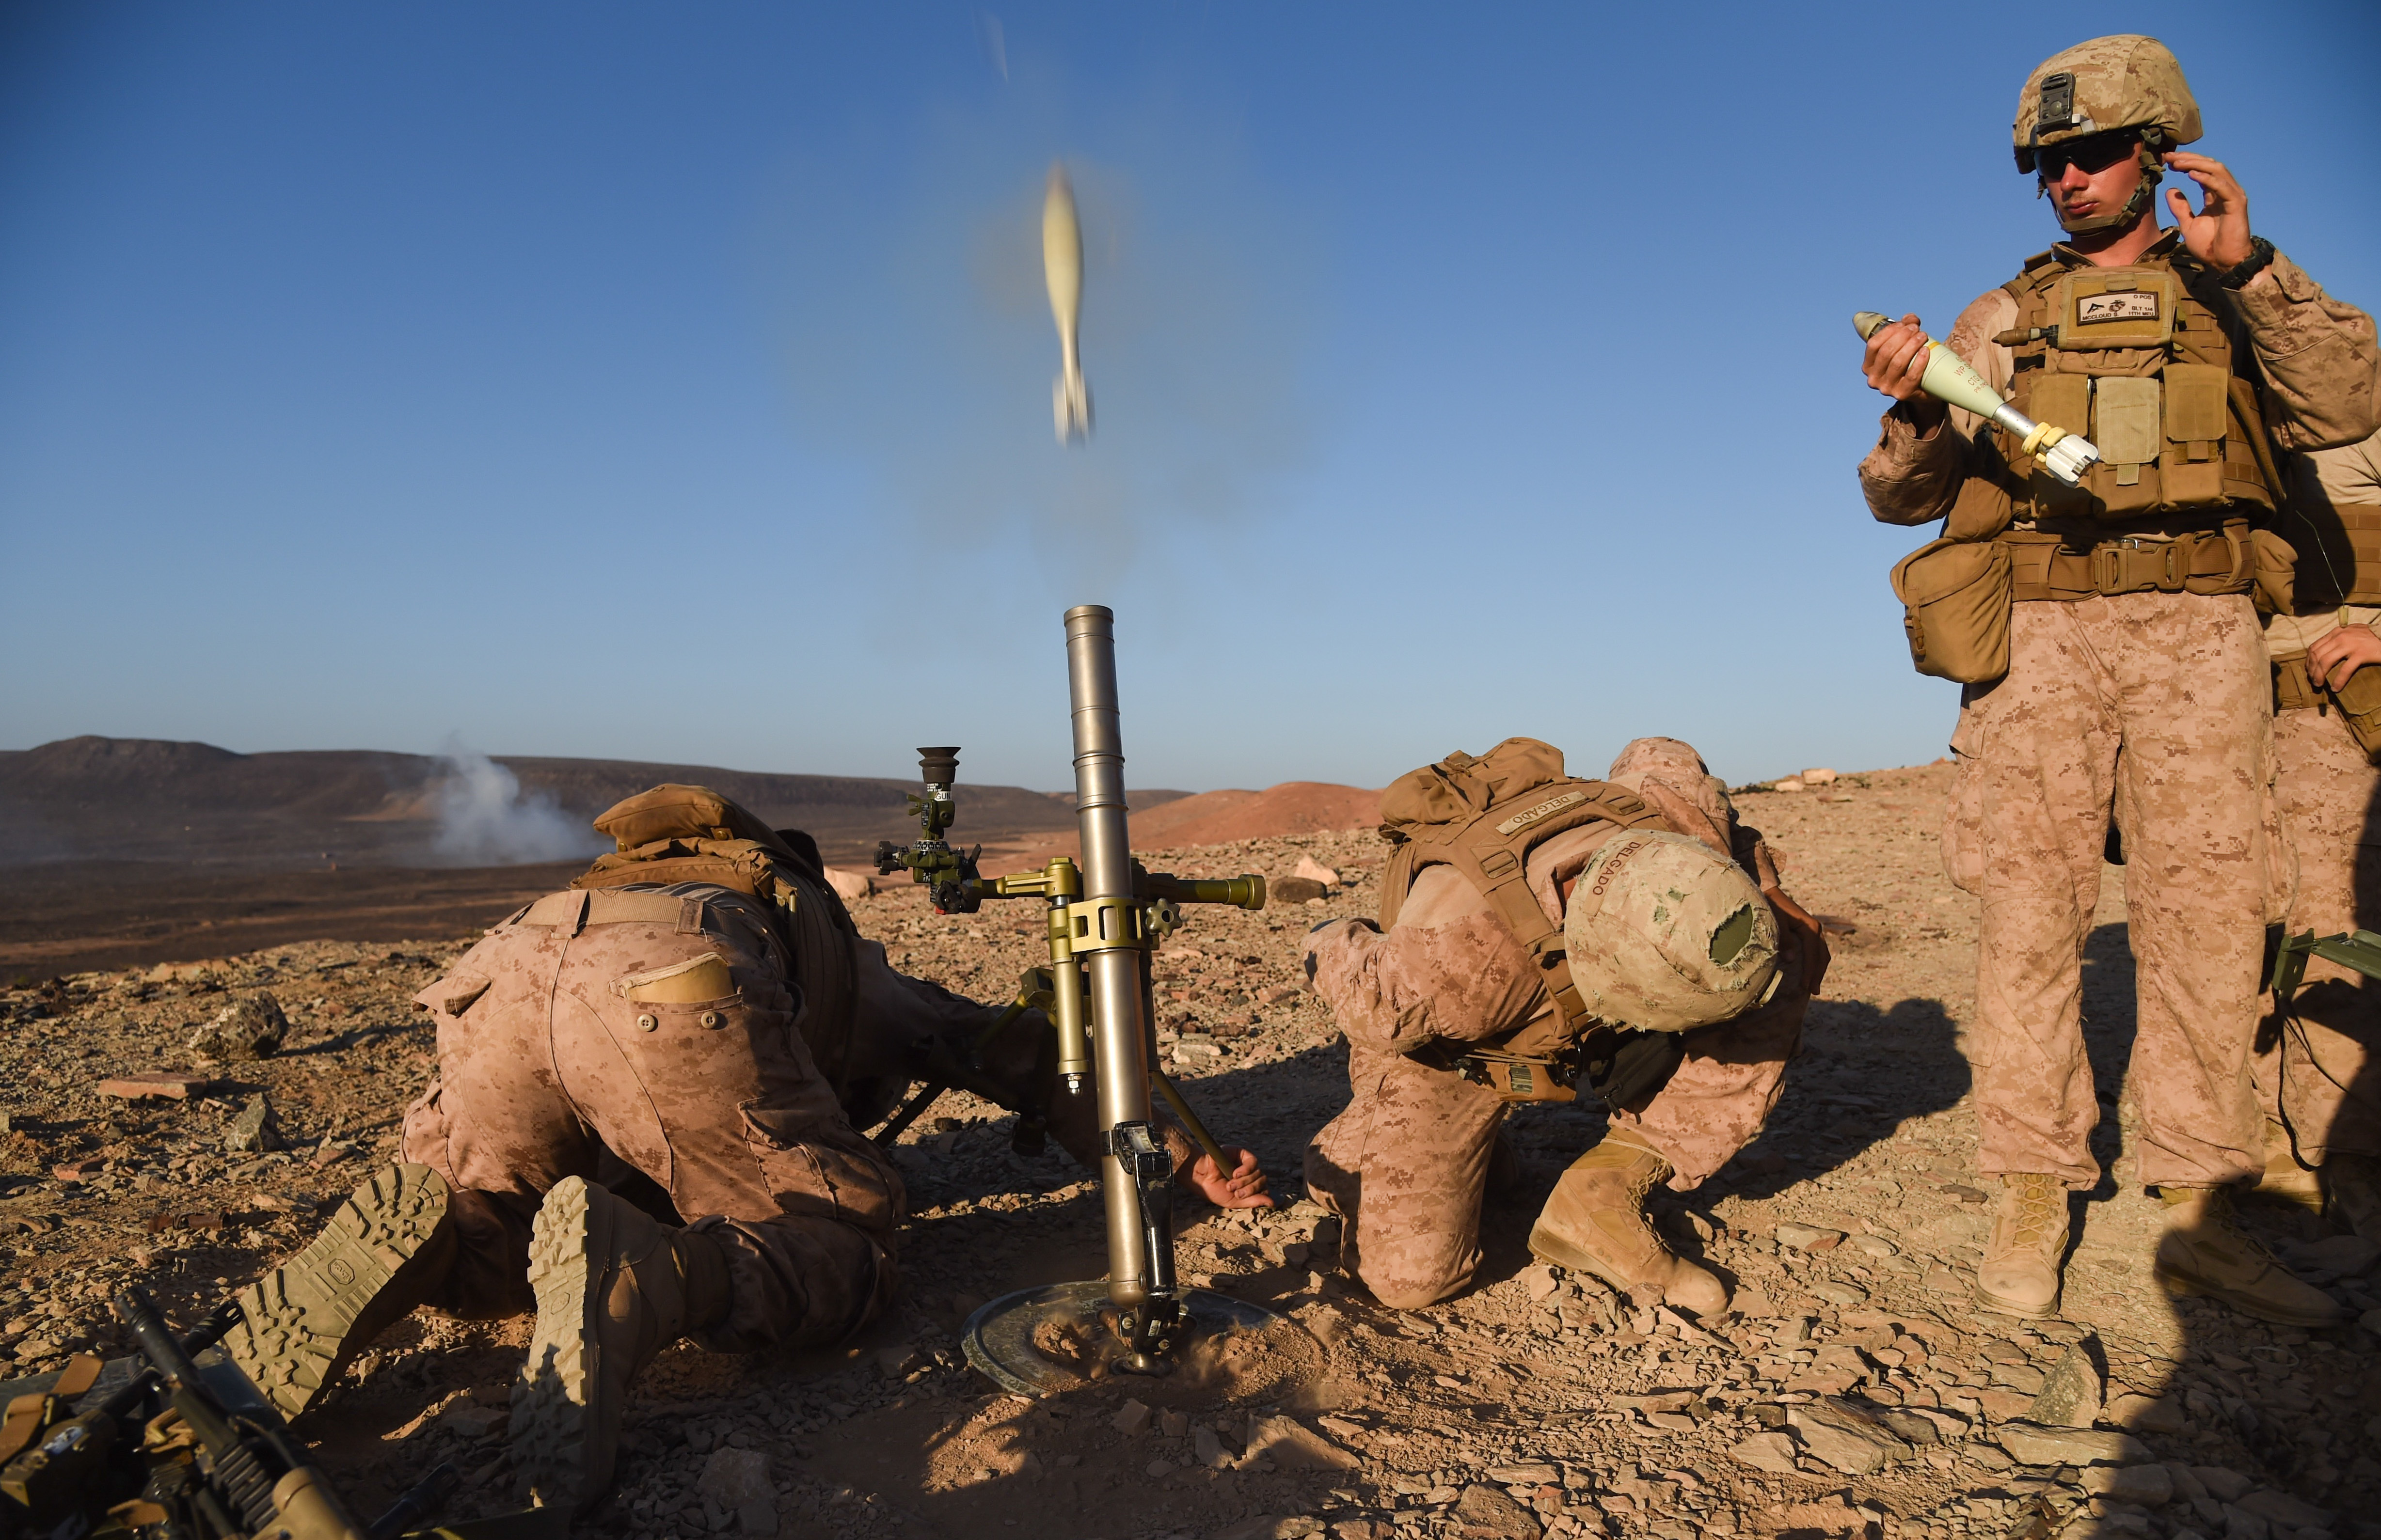 U.S. Marine Corps mortarmen, Weapons Platoon, Battalion Landing Team 1st Battalion, 4th Marines, 11th Marine Expeditionary Unit (MEU), fire a white phosphorous M722A1 round from a M224 60mm Lightweight Company Mortar System during exercise Alligator Dagger, Dec. 13, 2016, at Arta Plage, Djibouti. The M722A1 rounds, weighing just under four pounds, can be used for spotting or marking a target area with a smoke cloud. The exercise allows opportunities for the 11th MEU to maintain their respective skills and proficiencies. (U.S. Air National Guard photo by Staff Sgt. Penny Snoozy)